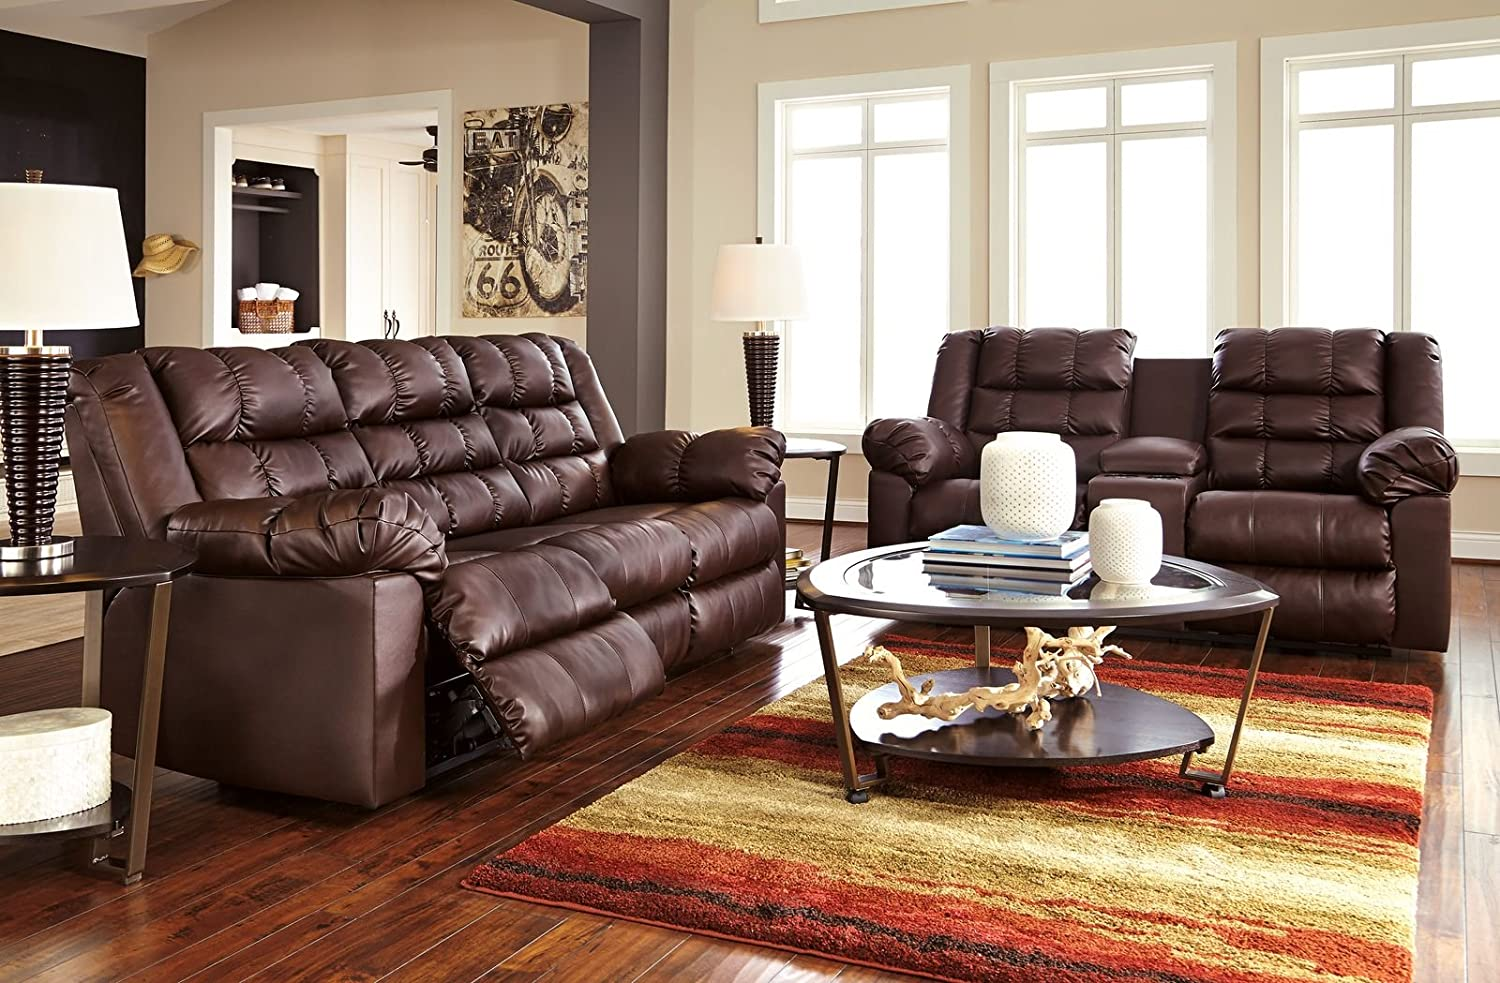 Amazon.com Signature Design by Ashley 8320294 Brolayne DuraBlend Collection Reclining Loveseat with Console Saddle Kitchen \u0026 Dining & Amazon.com: Signature Design by Ashley 8320294 Brolayne DuraBlend ... islam-shia.org